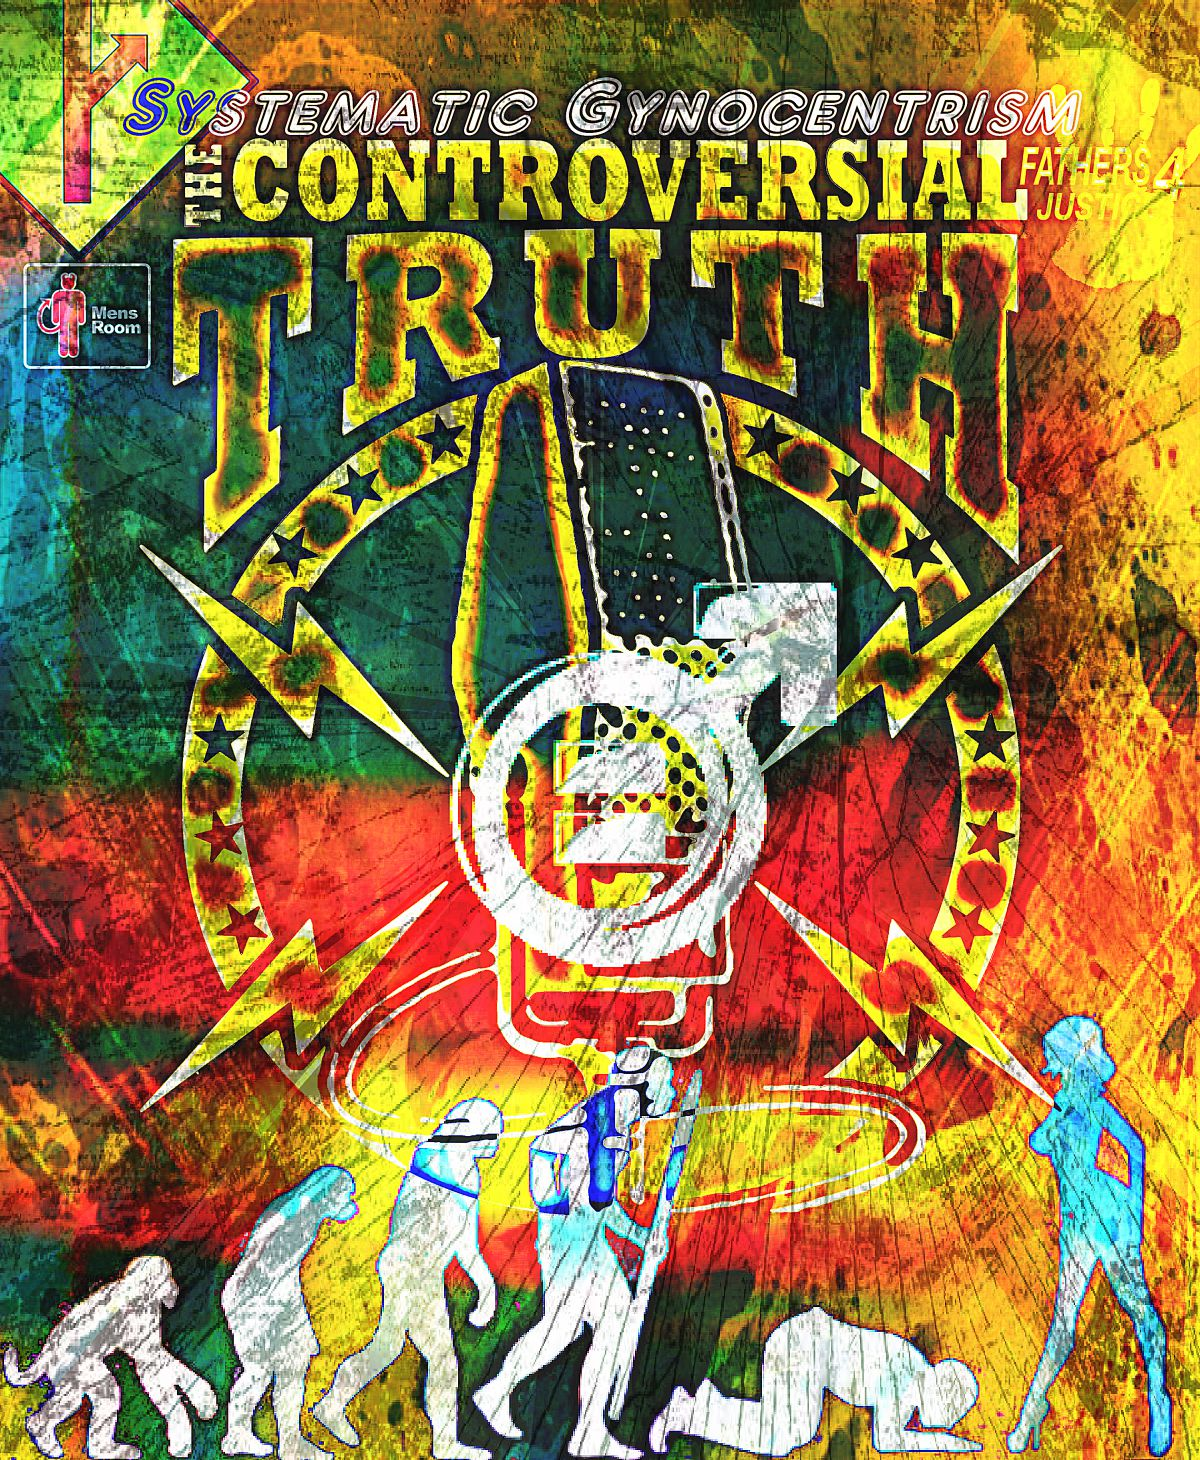 The Controversial Truth Project